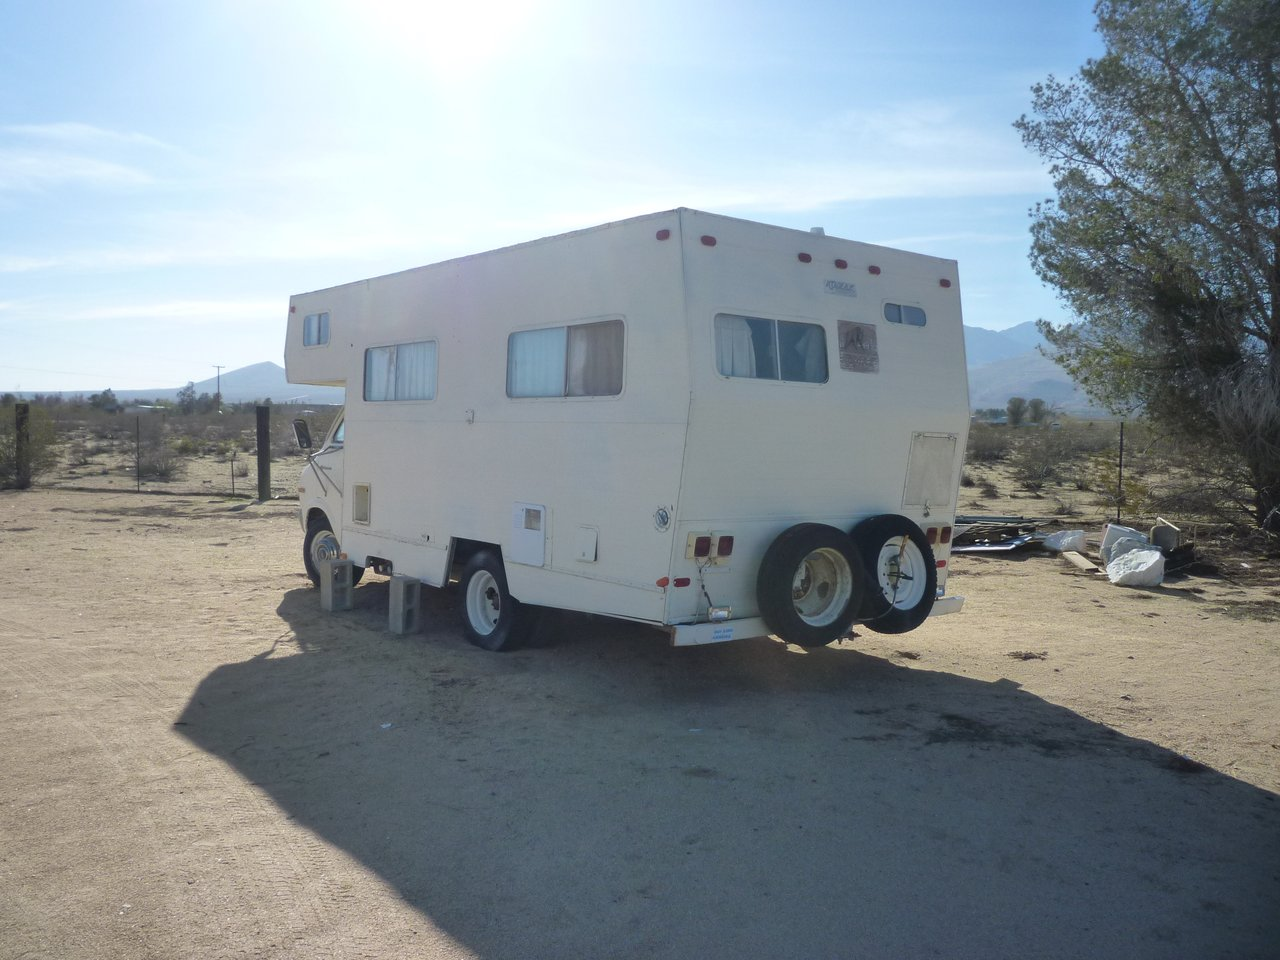 P1020474chili camper low.JPG